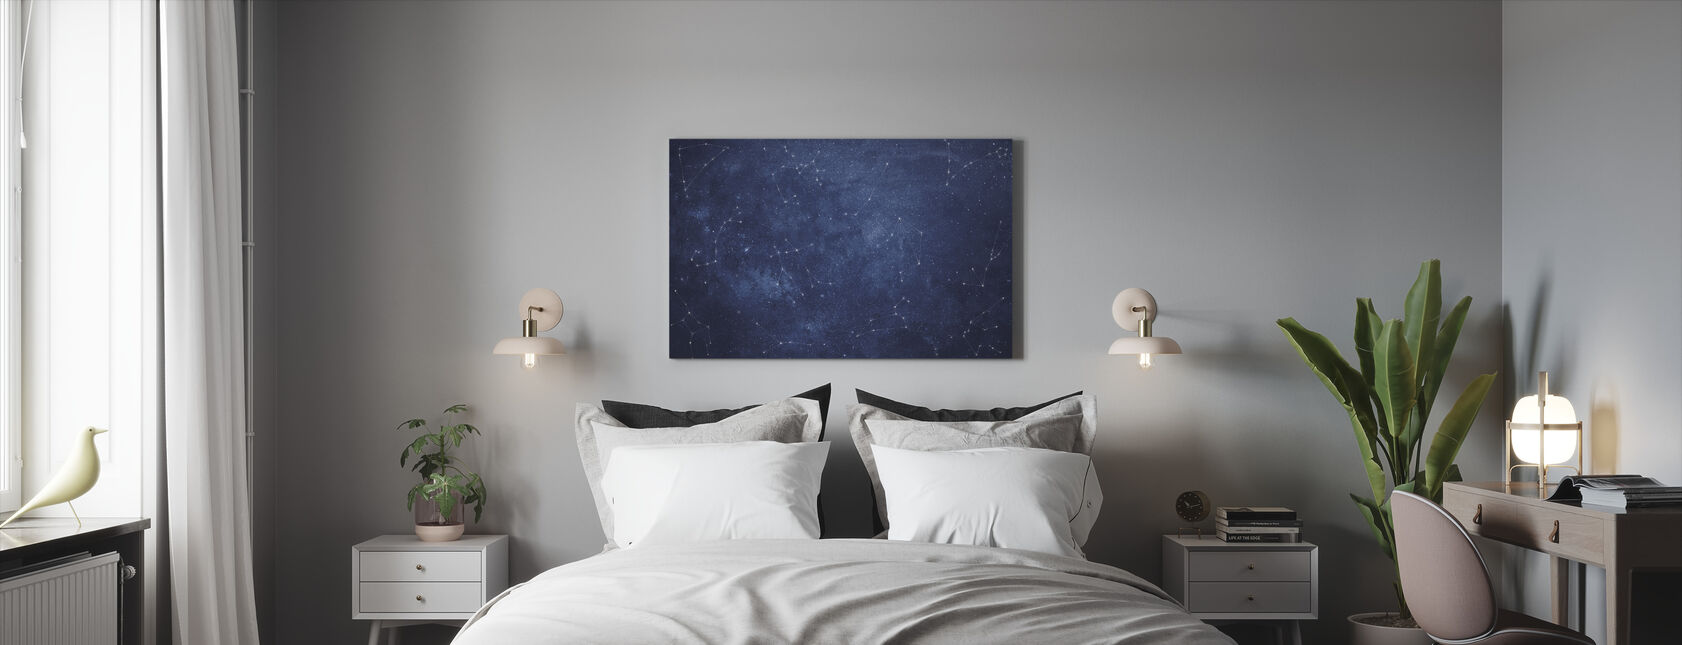 Zoodiac Sky - Canvas print - Bedroom